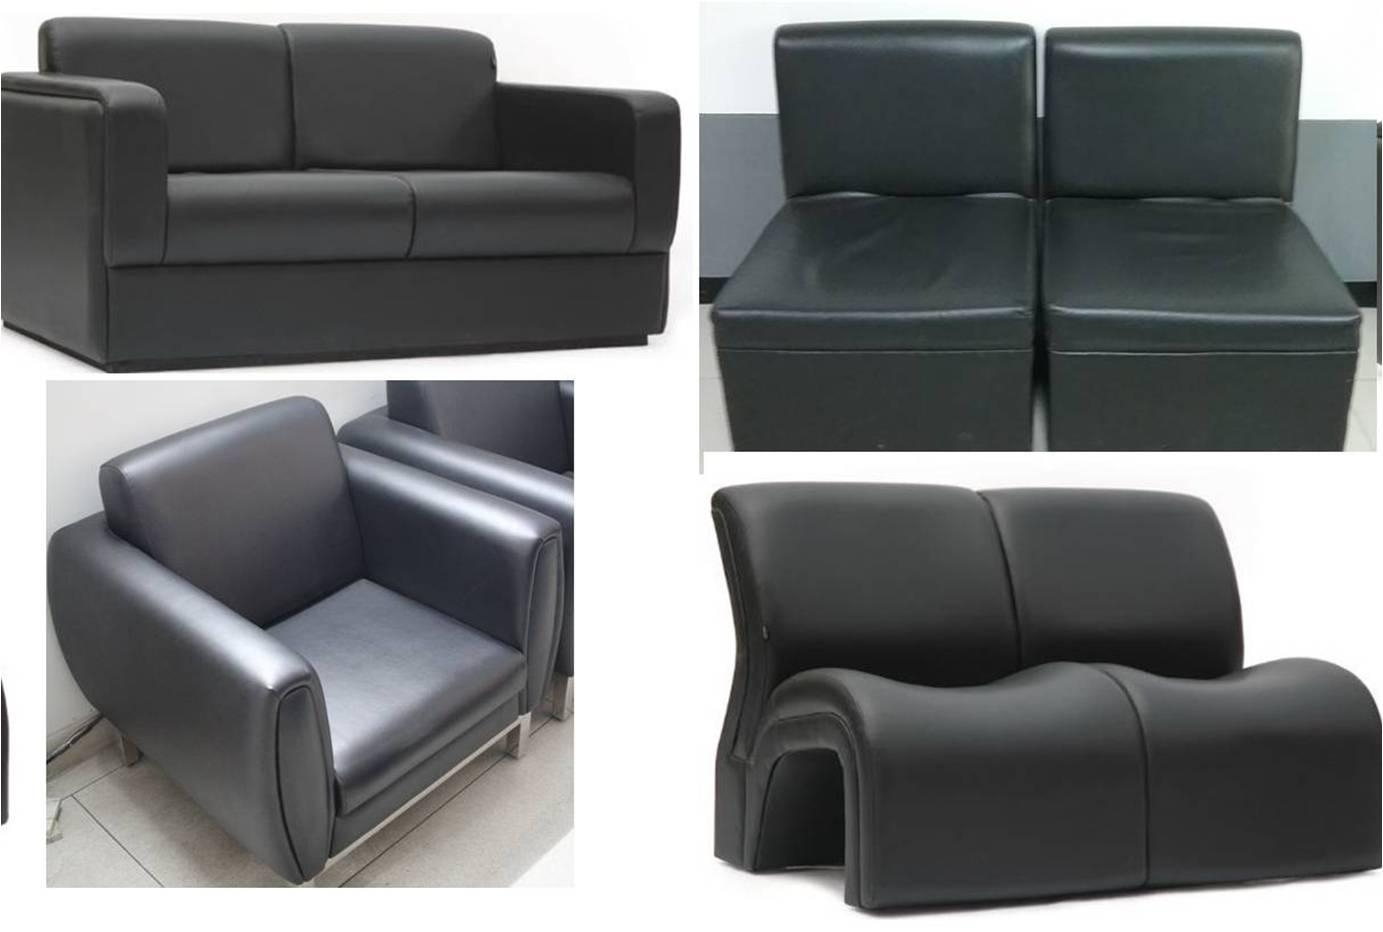 Chair Great White Sofa Chair 77 Sofas And Couches Set With Office Within Office Sofa Chairs (View 17 of 20)